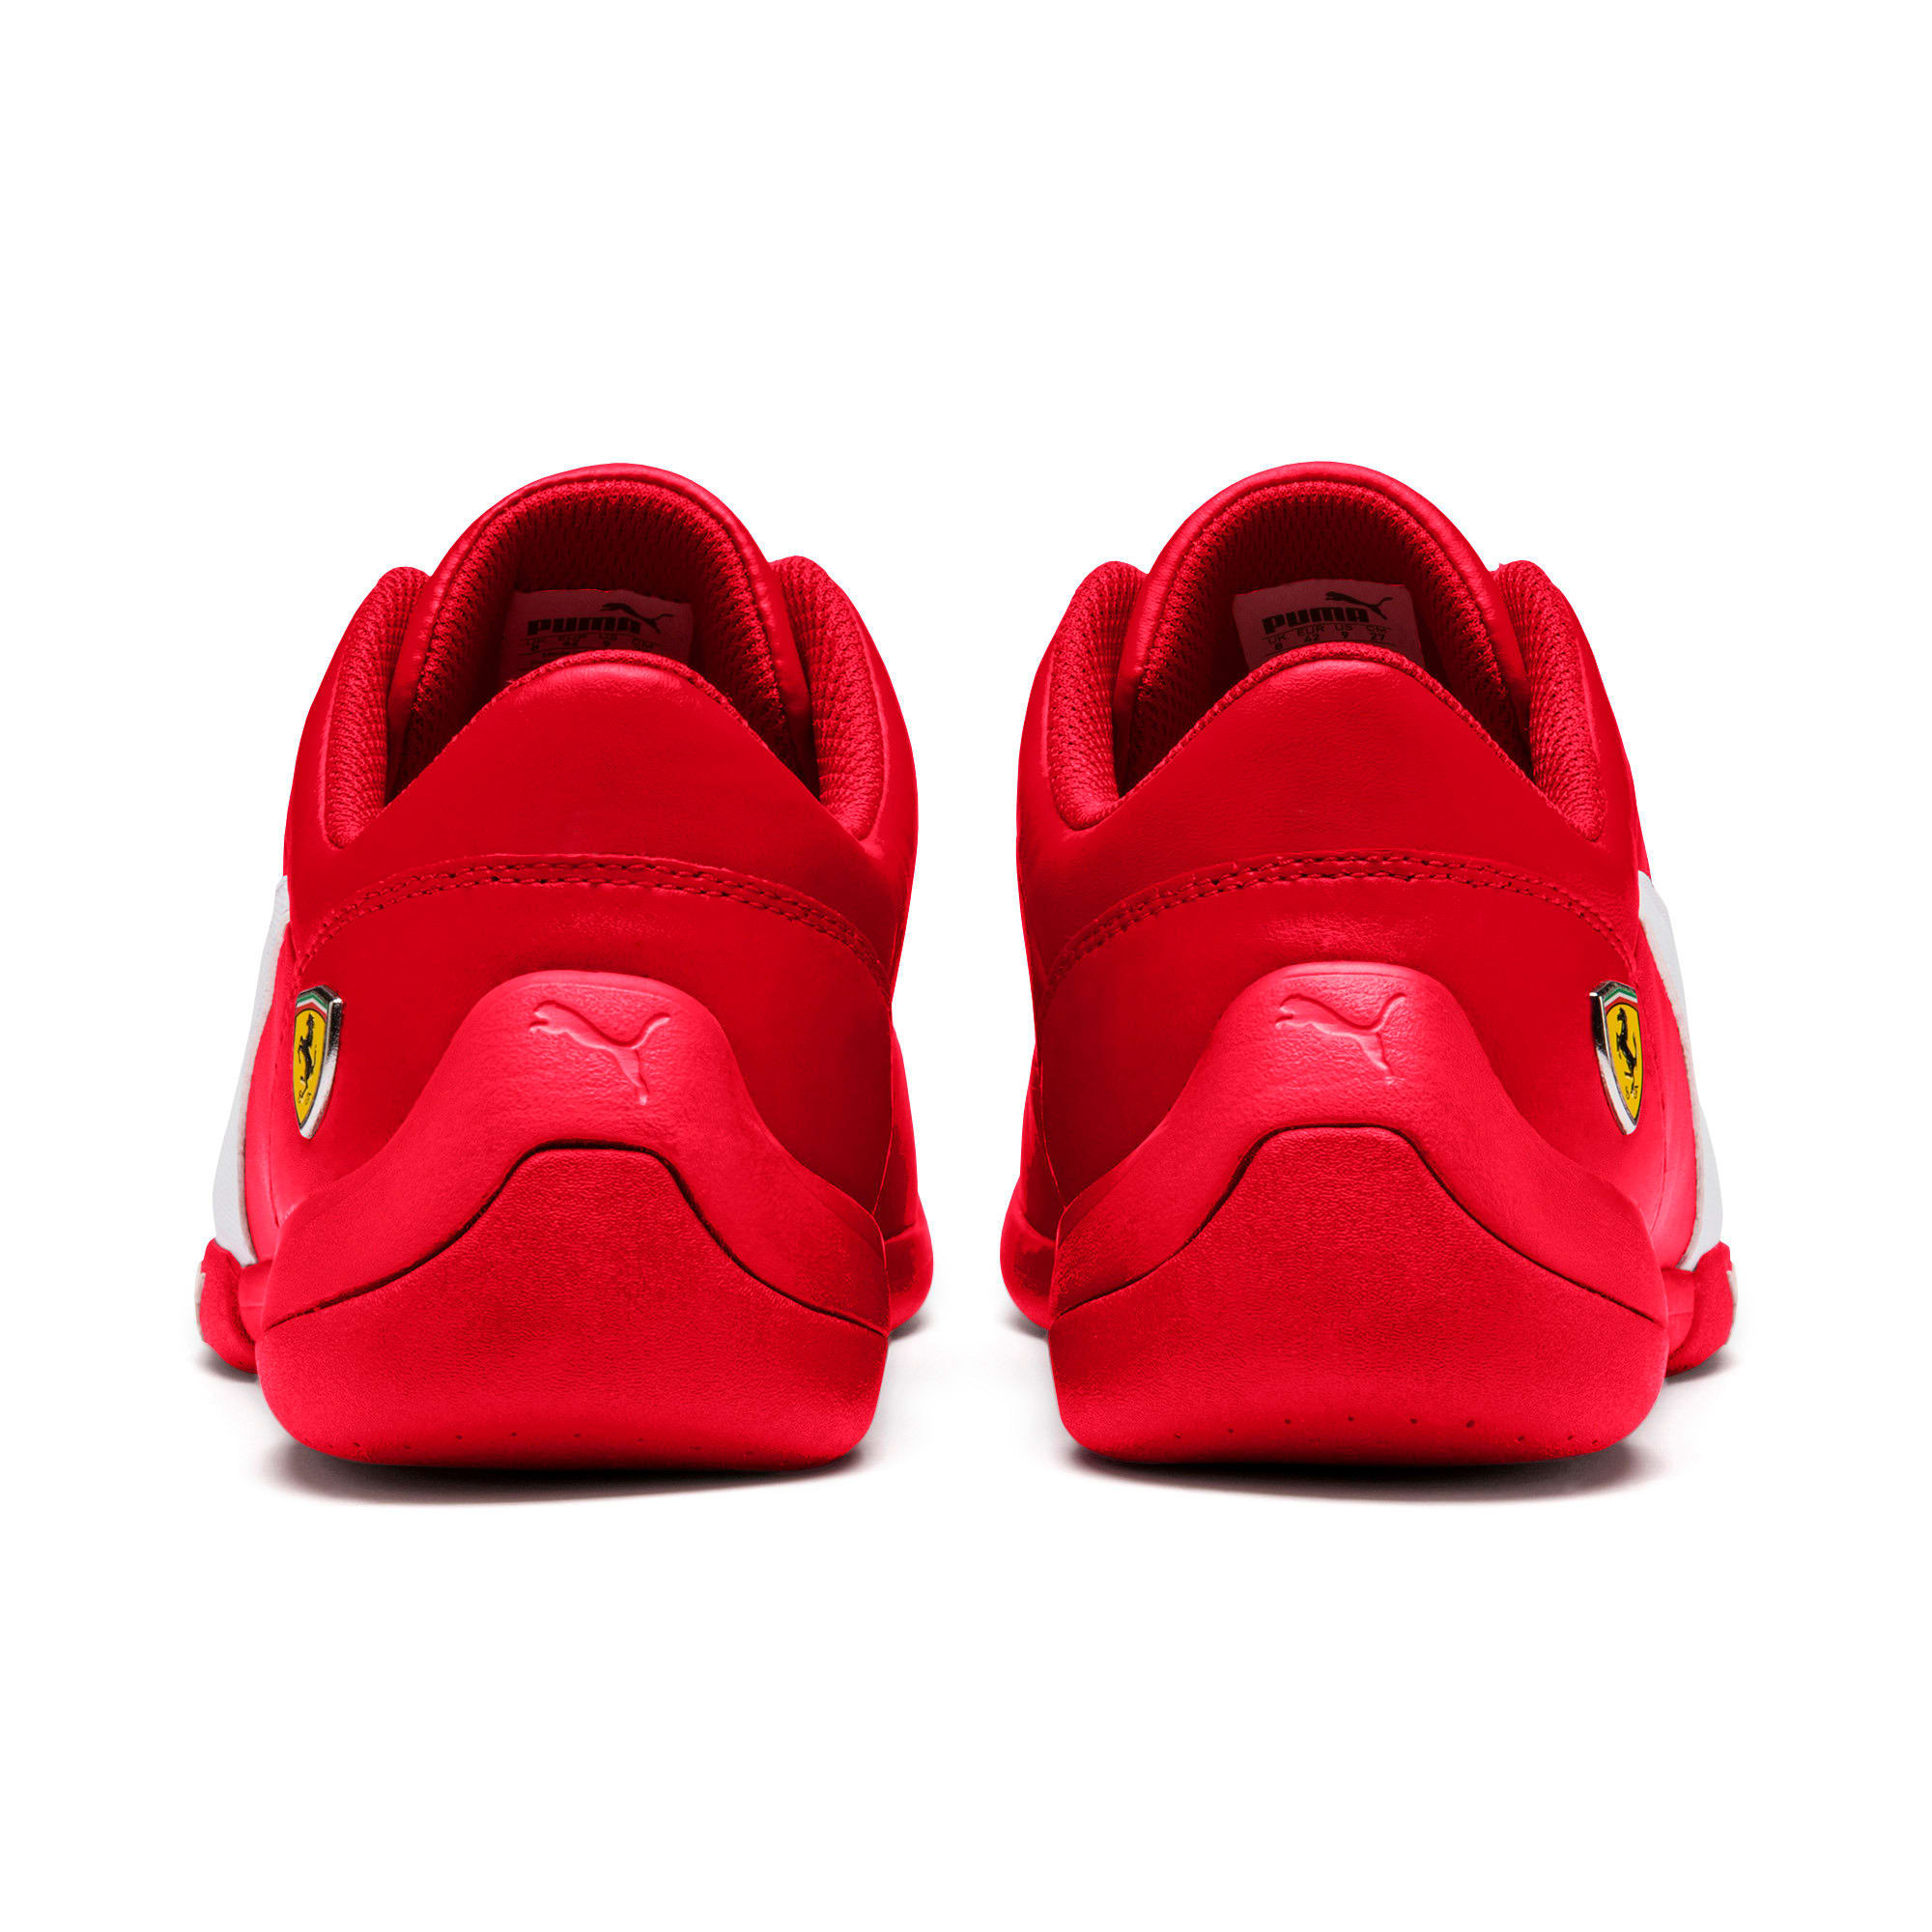 Thumbnail 4 of Scuderia Ferrari Kart Cat III Shoes, Rosso Corsa-White, medium